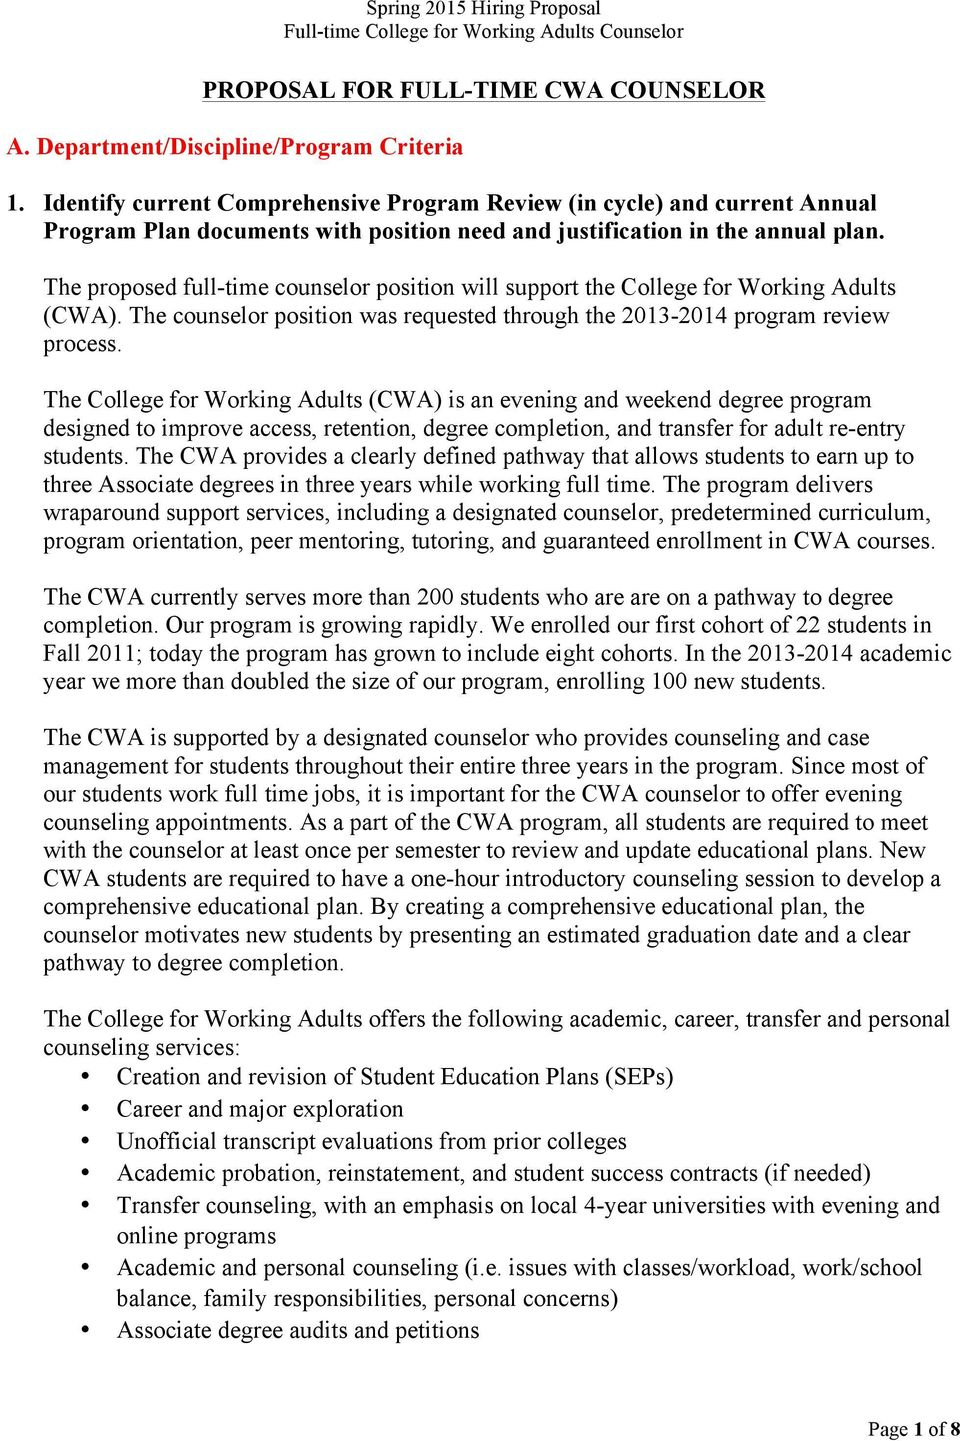 The proposed full-time counselor position will support the College for Working Adults (CWA). The counselor position was requested through the 2013-2014 program review process.